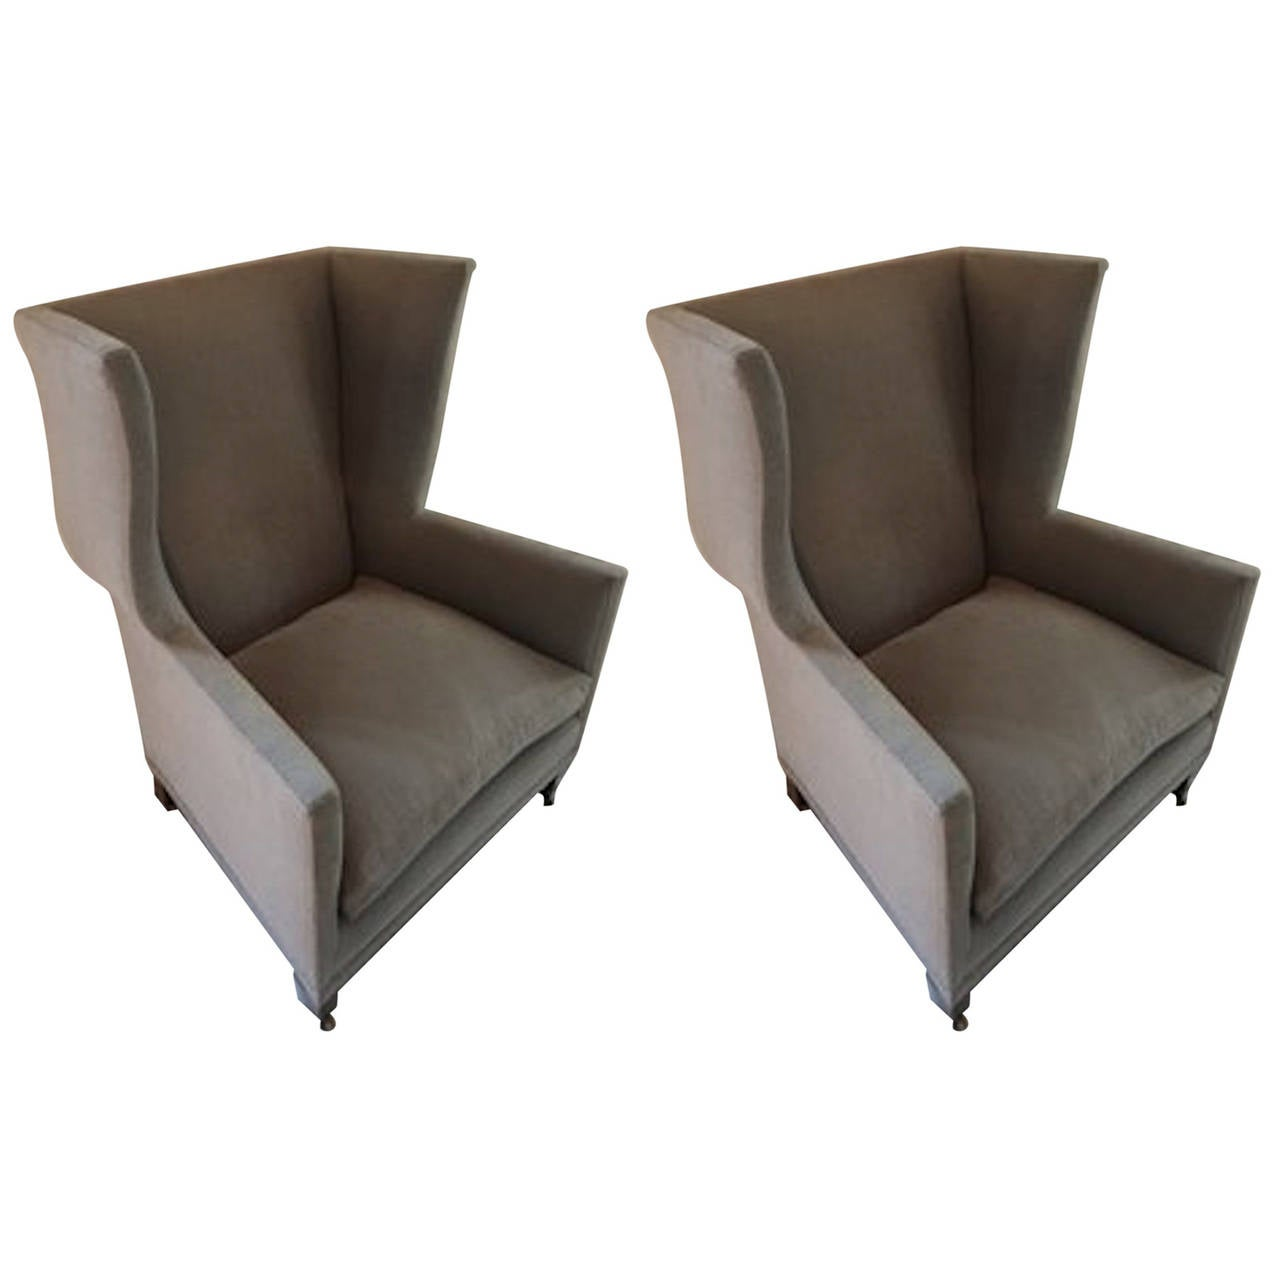 English Style Upholstered Pair of Grey Wing Back Armchairs, Contemporary For Sale